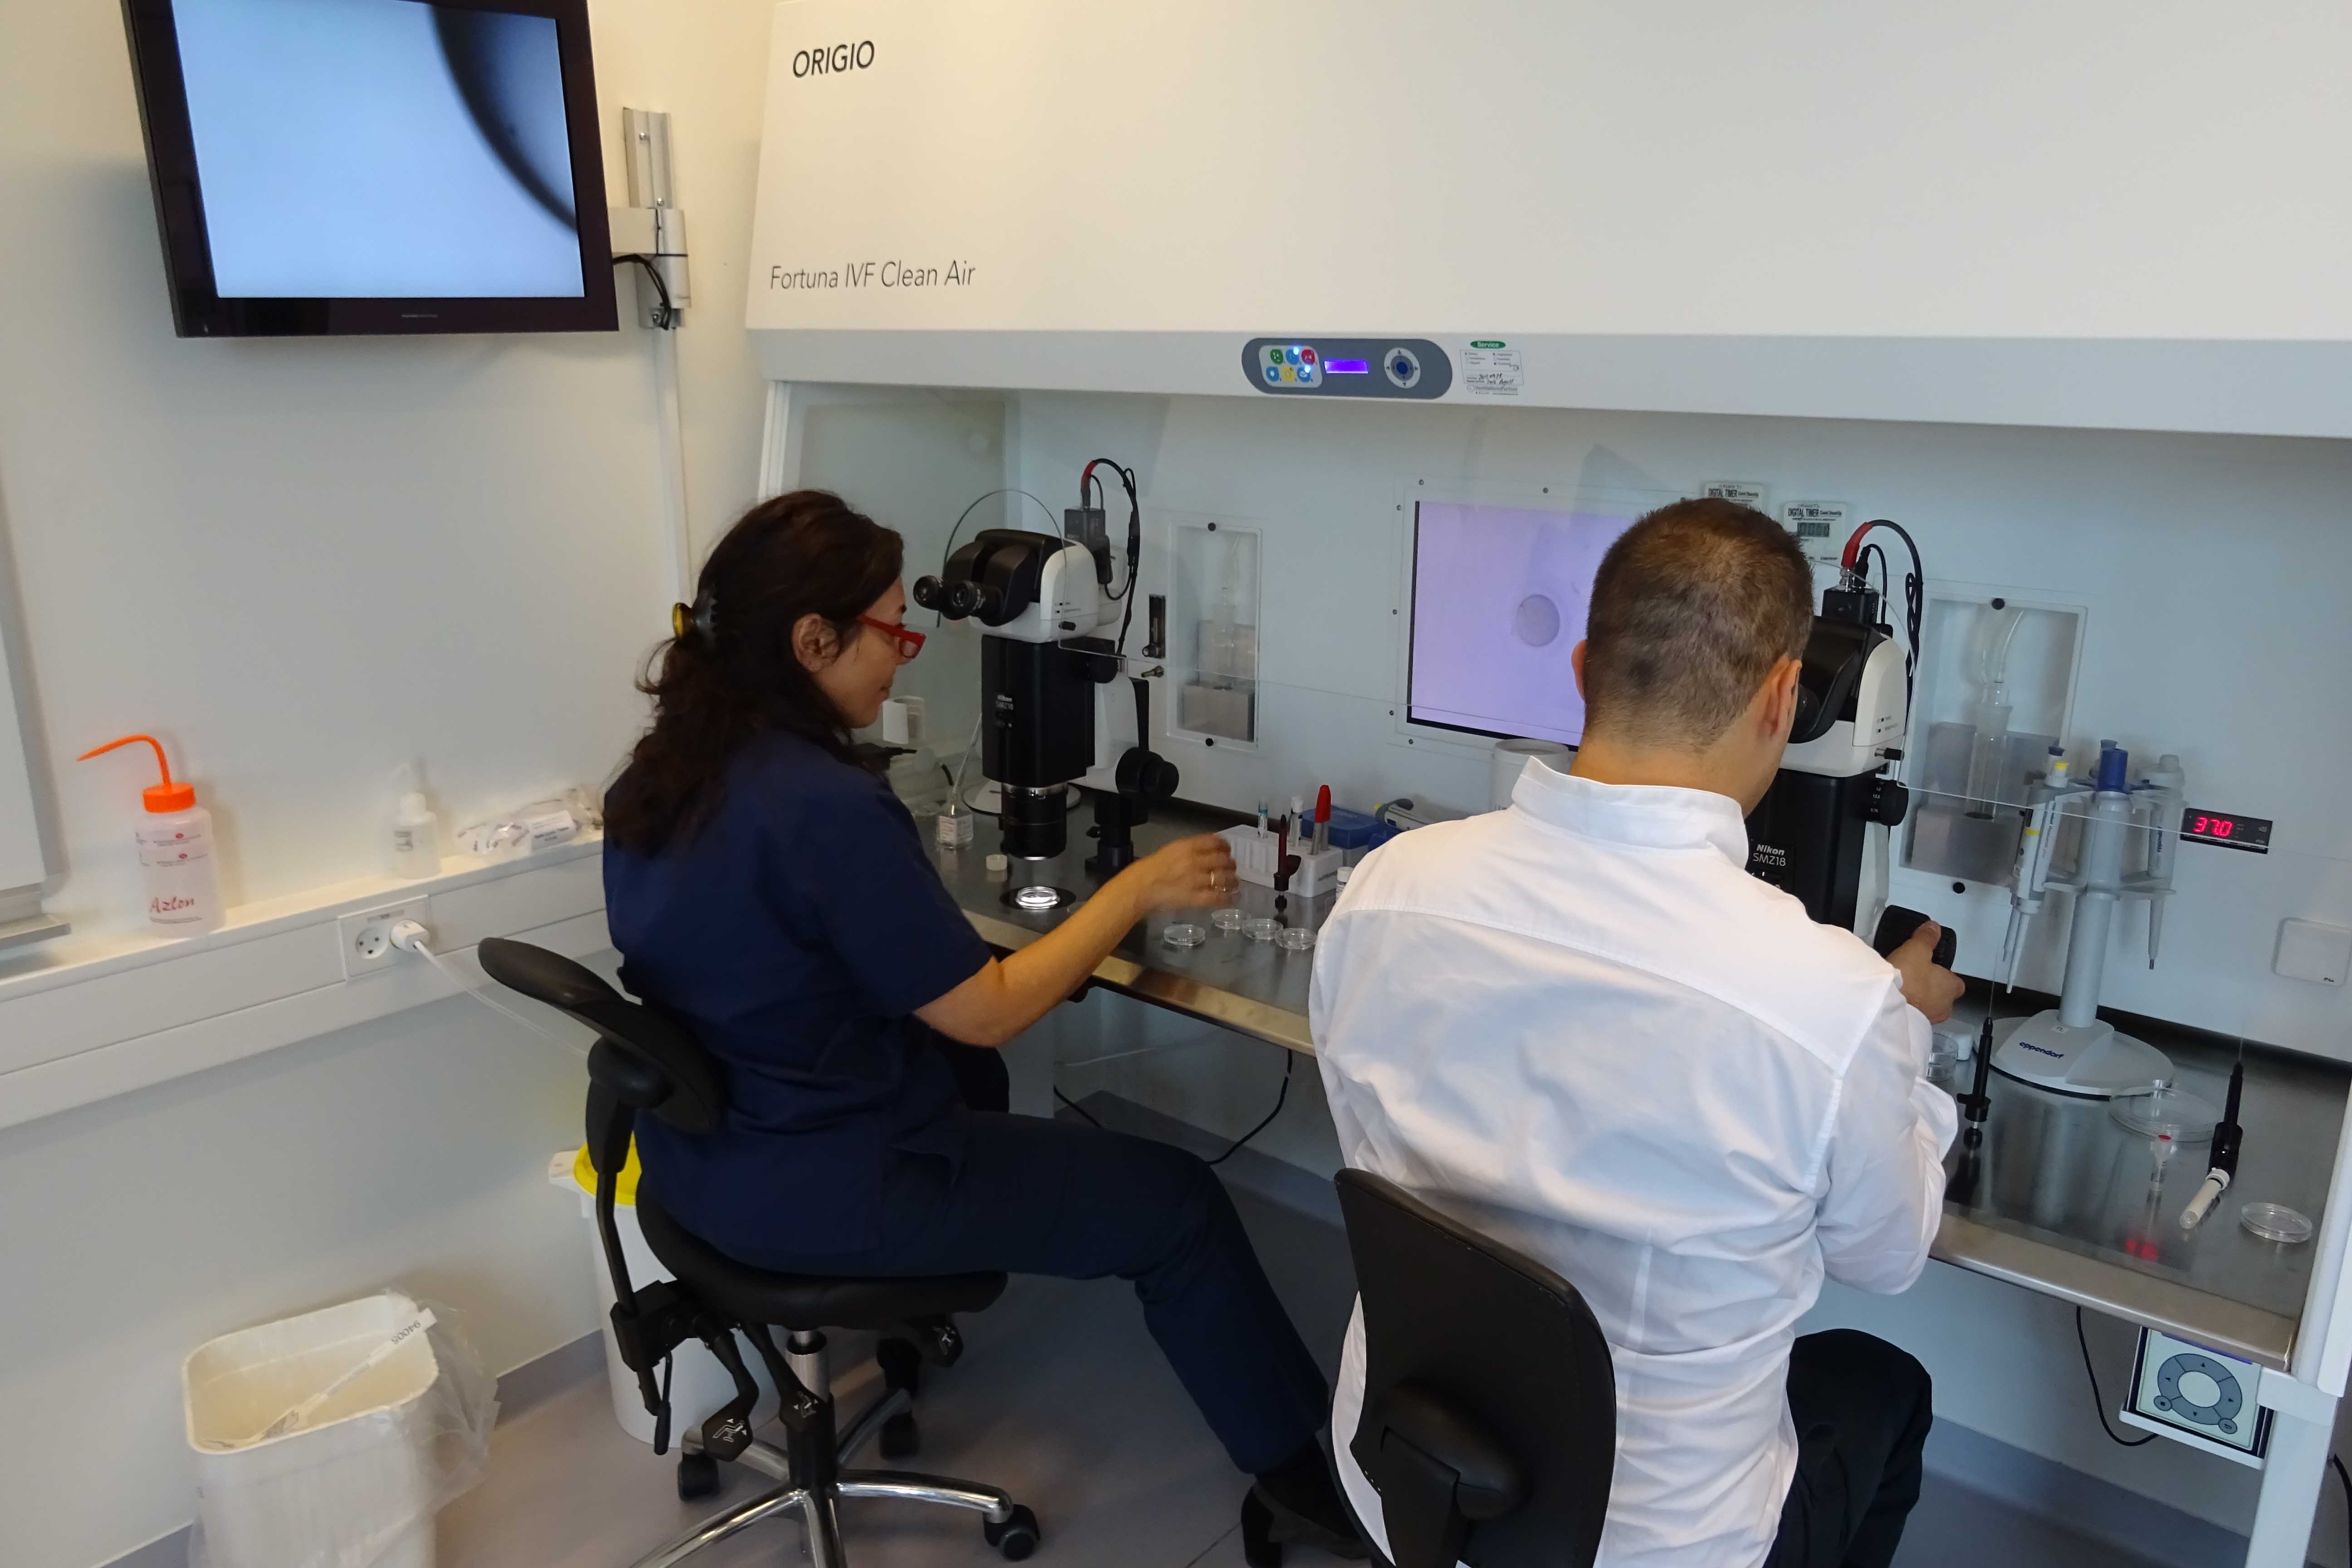 ORIGIO_Traning_Lab_Biopsy_Course_lab3_Oct2015